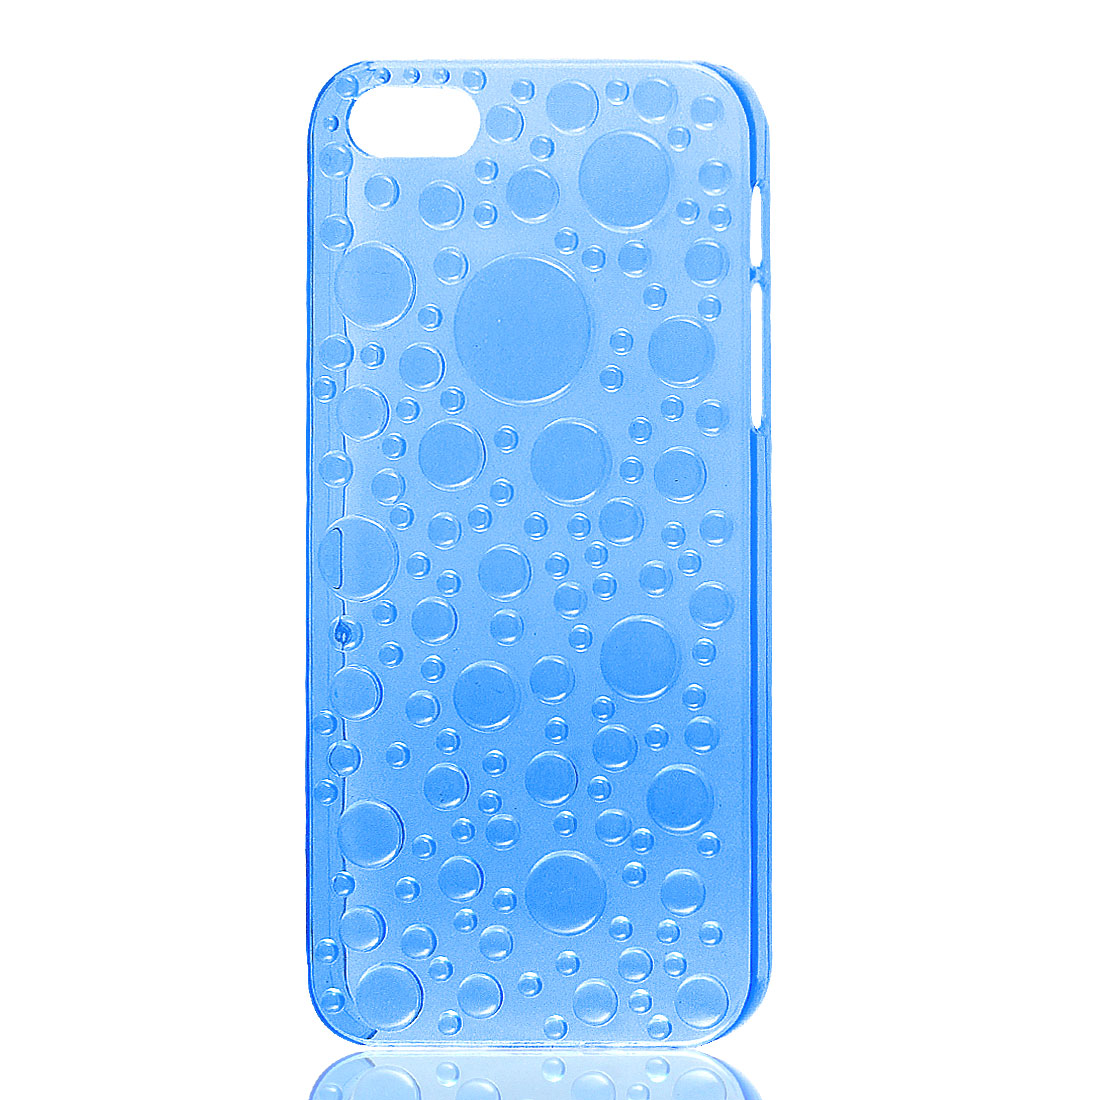 3D Raindrop Waterdrop Hard Back Case Cover Clear Blue for Apple iPhone 5 5G